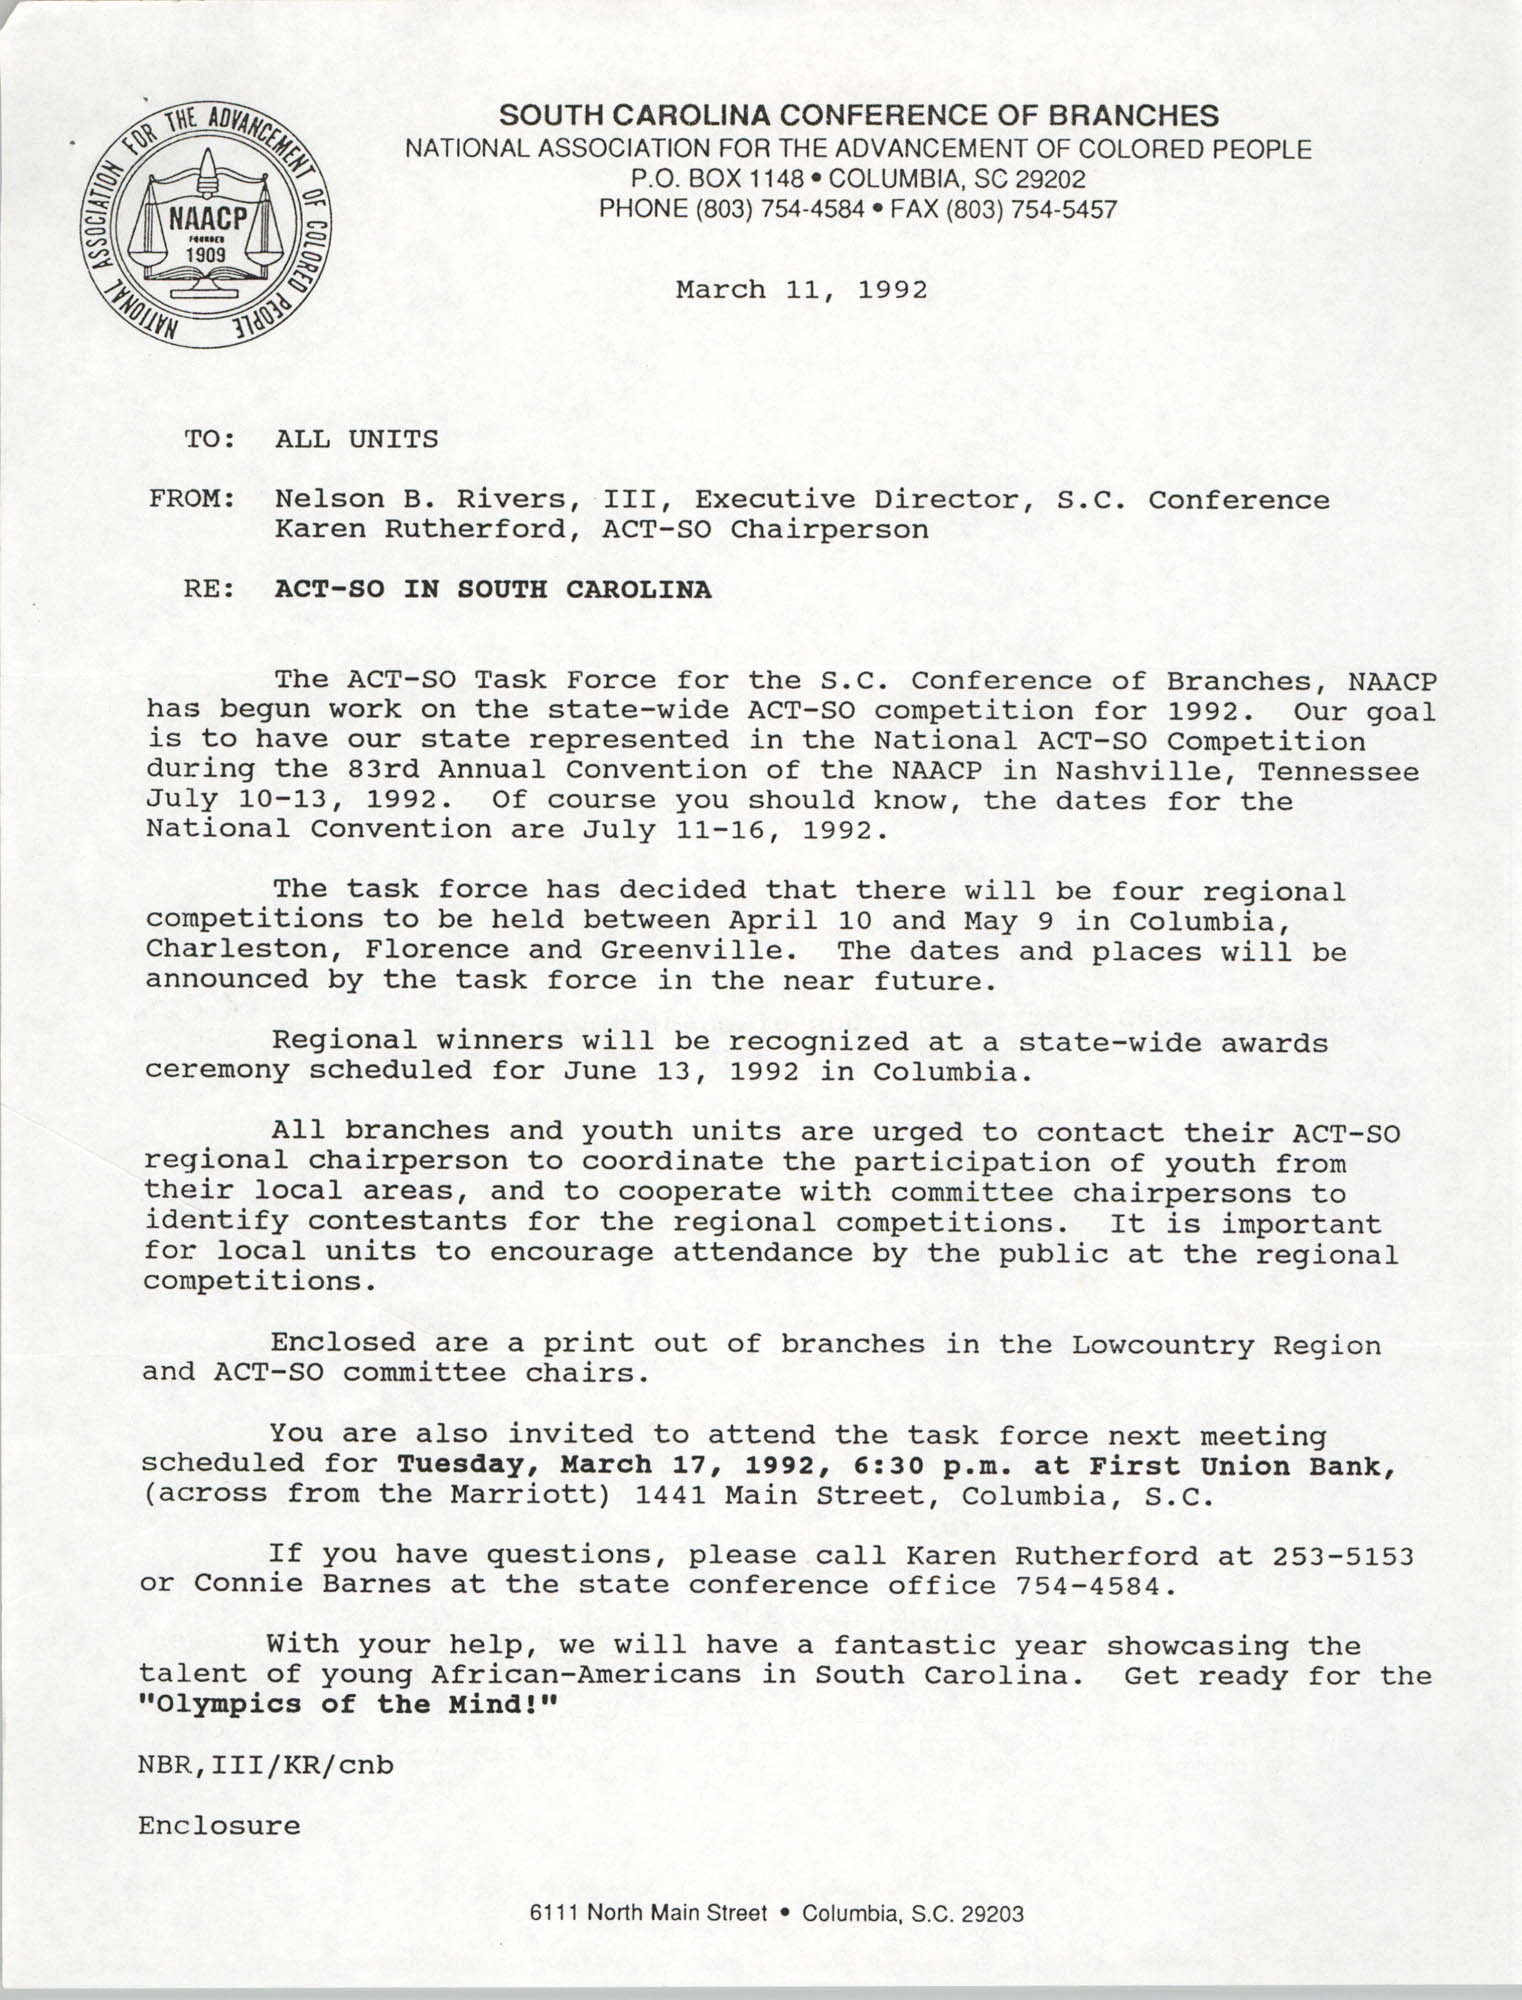 South Carolina Conference of Branches of the NAACP Memorandum, March 11, 1992